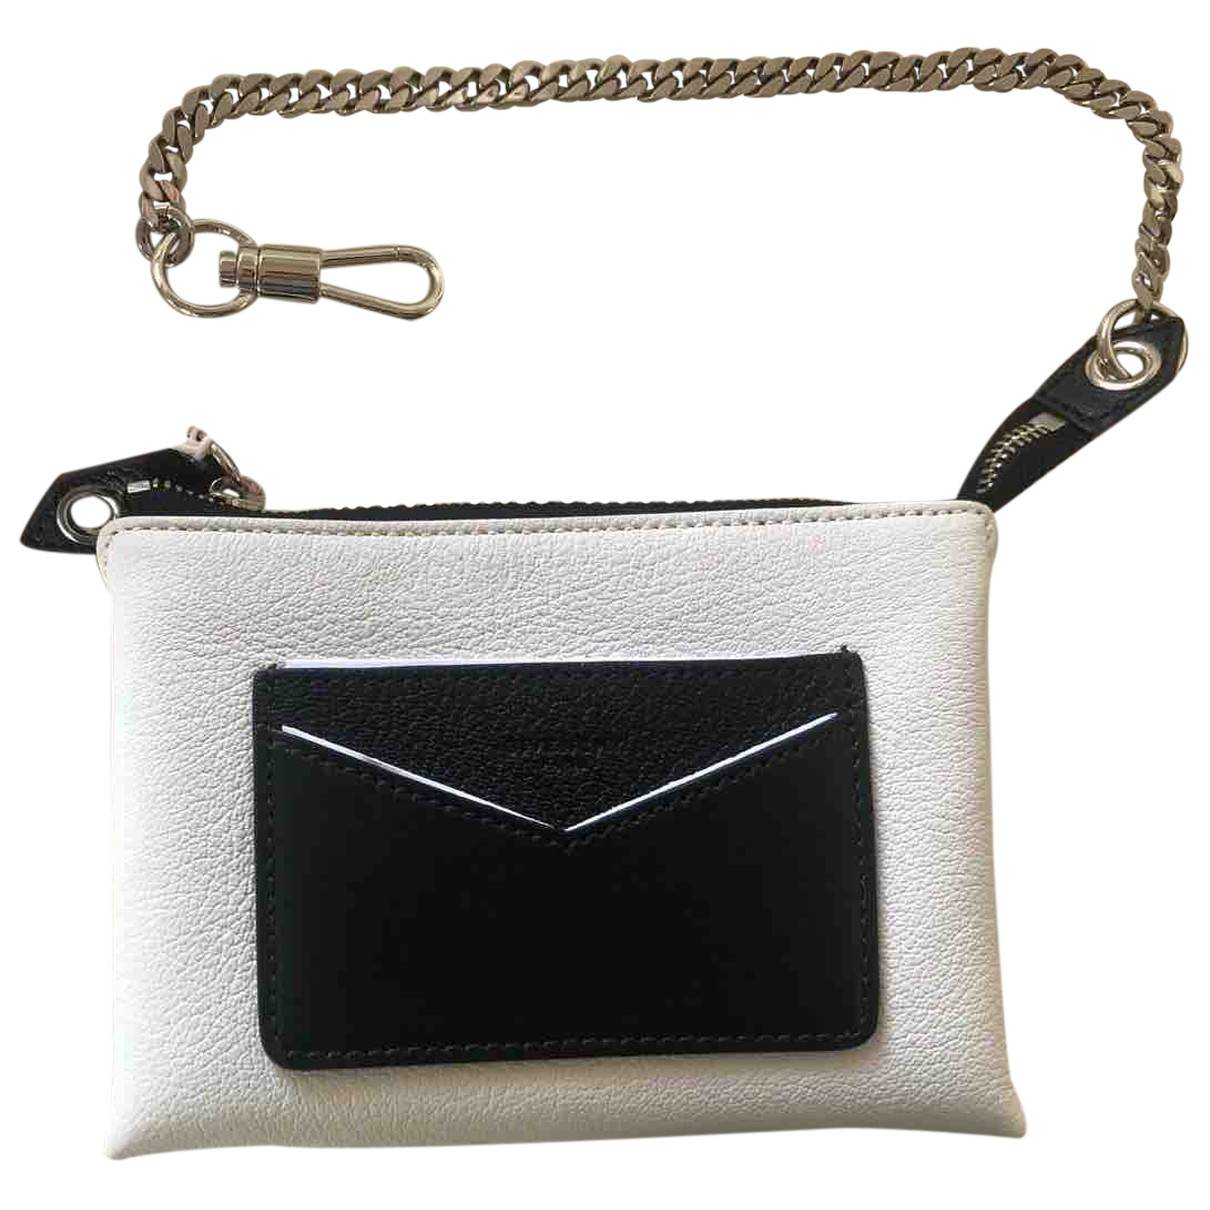 Givenchy \N Clutch in  Weiss Leder